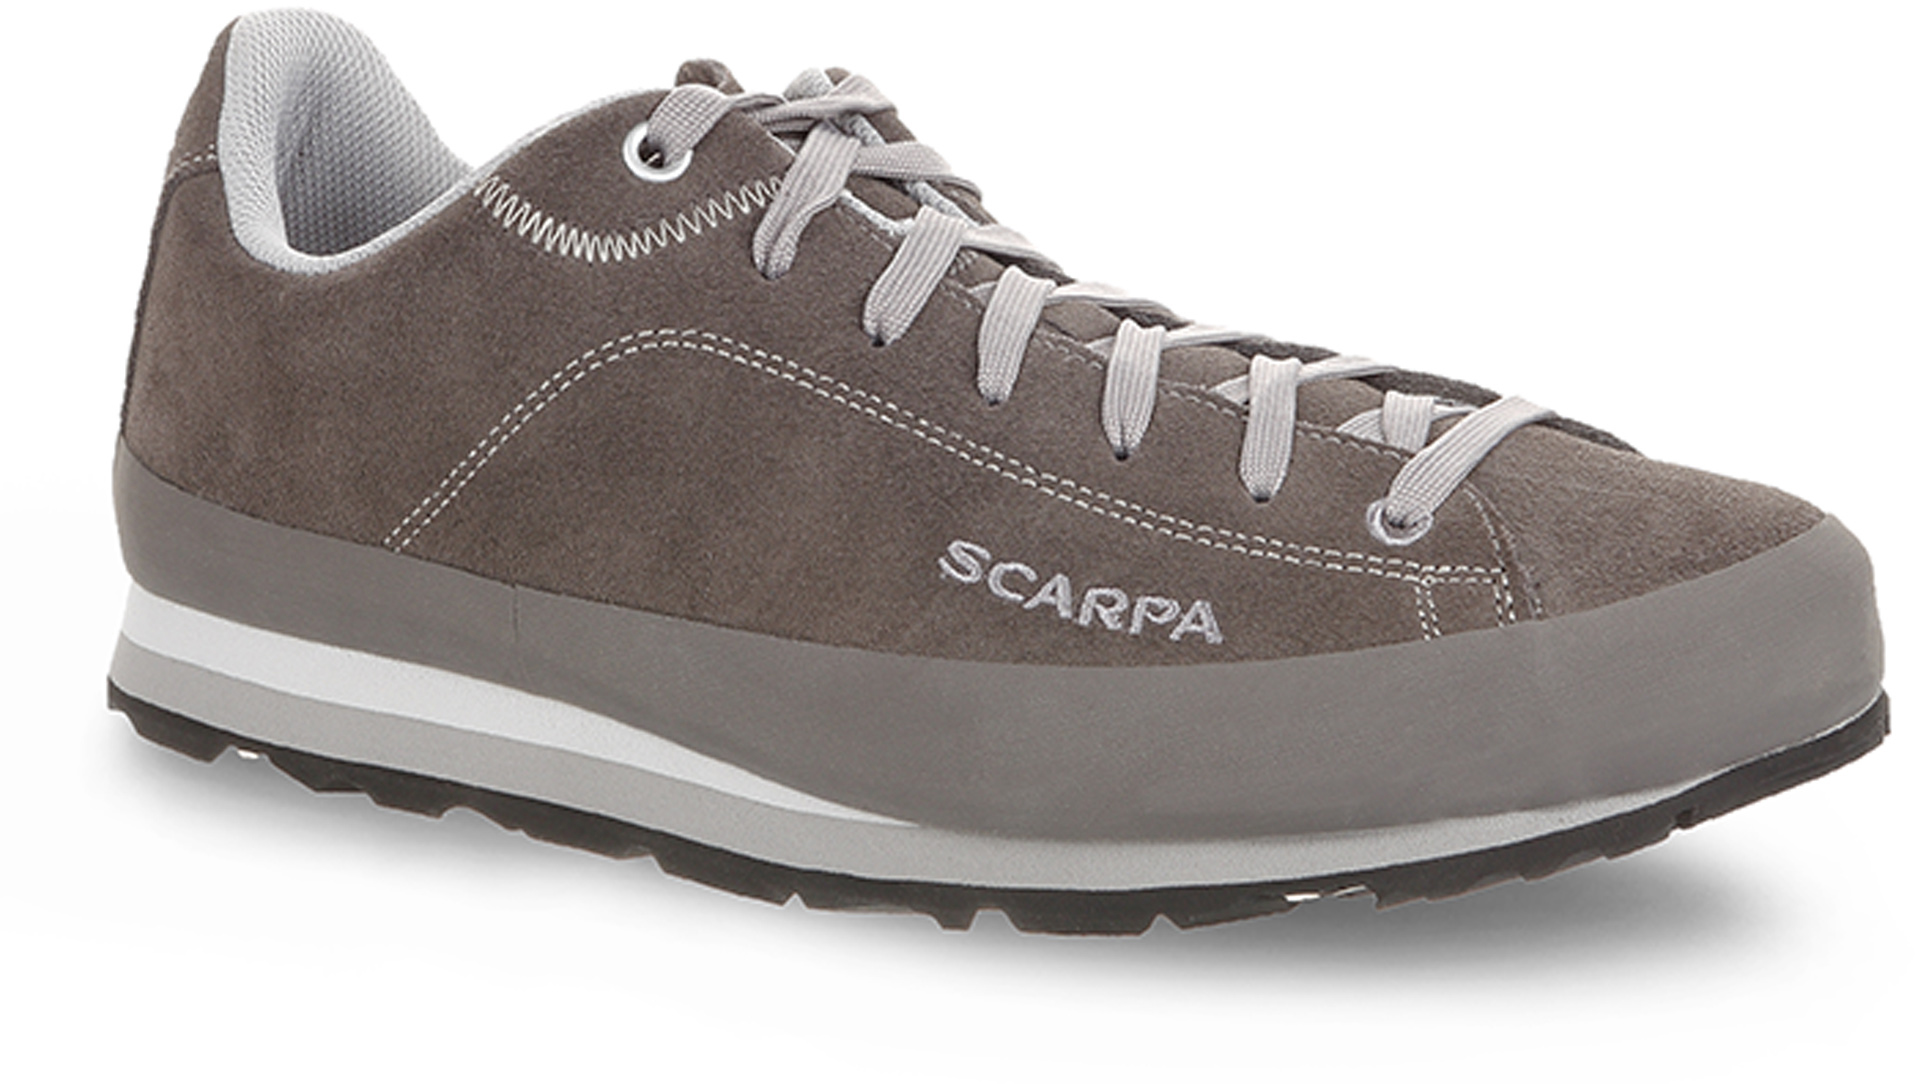 scarpa casual shoes